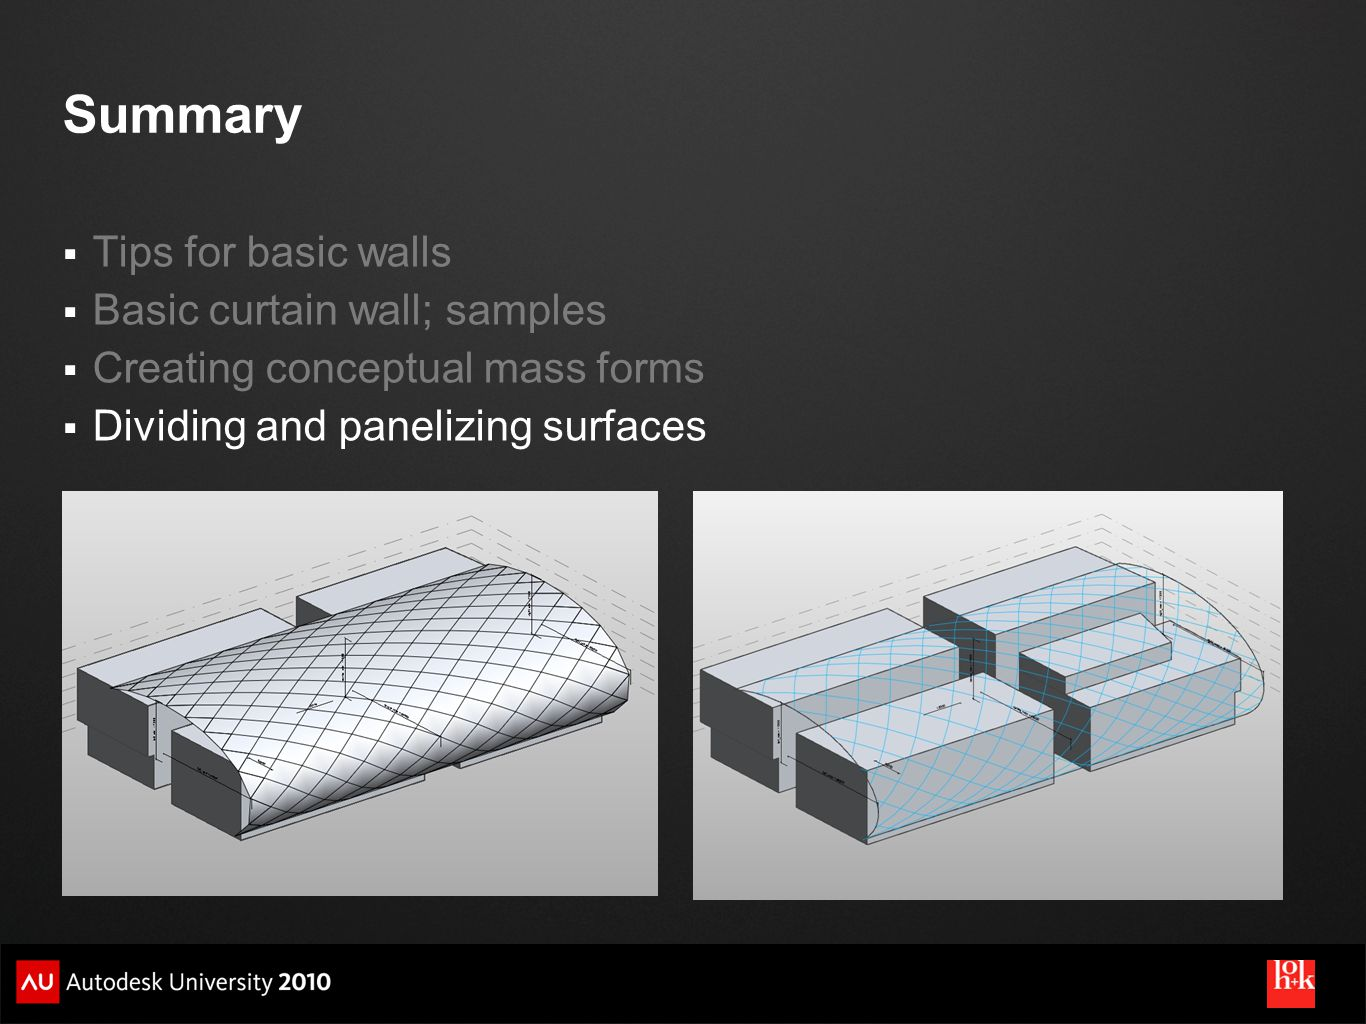 Summary Tips for basic walls Basic curtain wall; samples Creating conceptual mass forms Dividing and panelizing surfaces